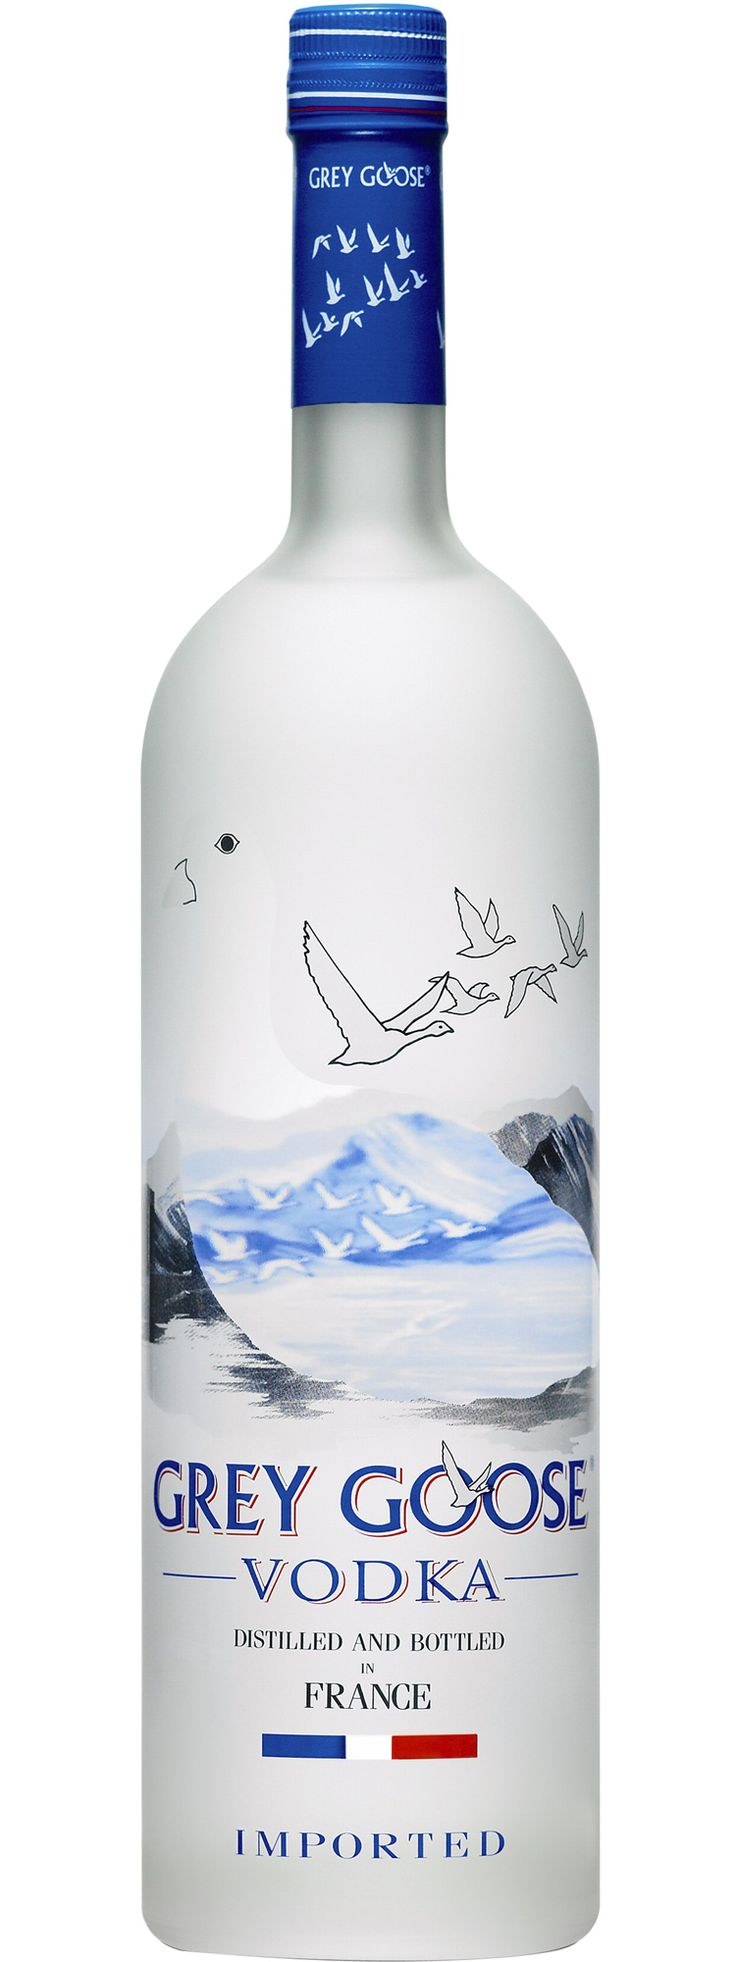 Grey Goose Vodka Yum Favorite Vodka